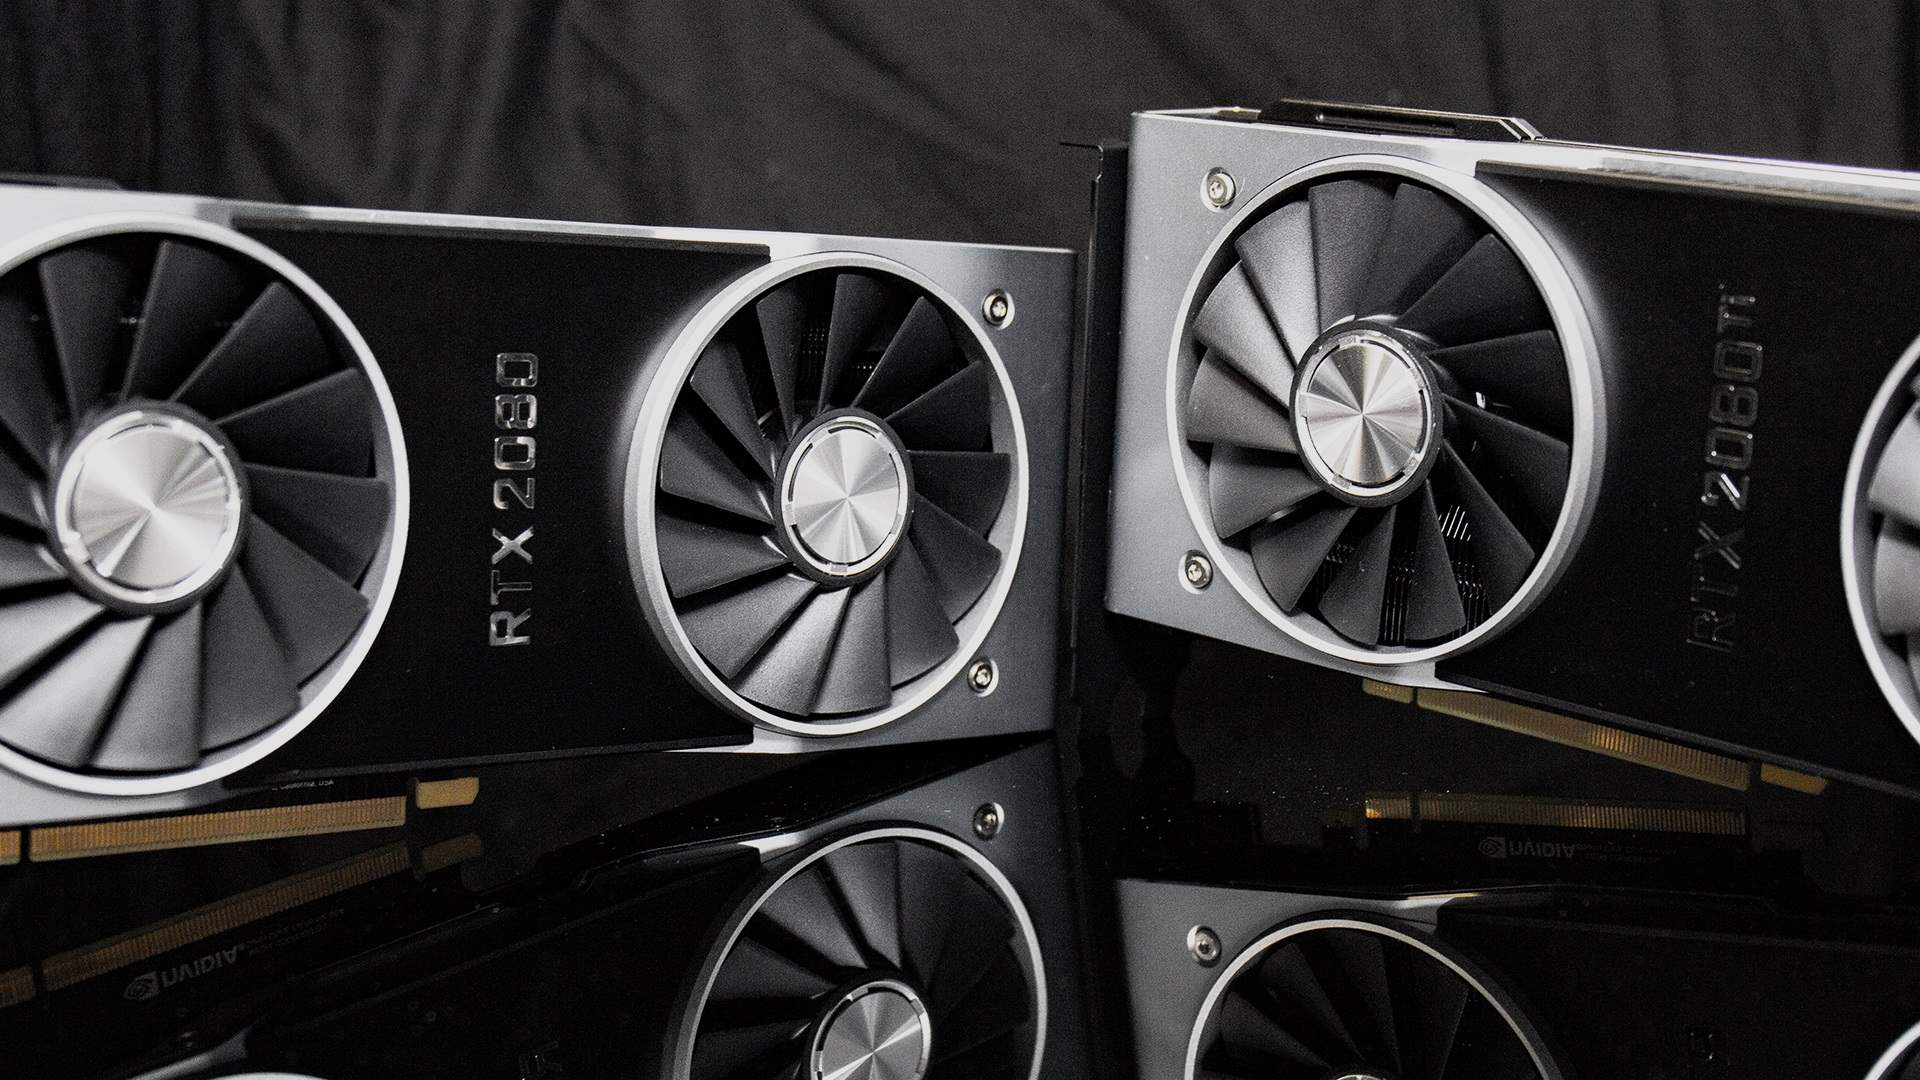 Nvidia GeForce RTX 2080 review: just about keeps ahead of AMD's